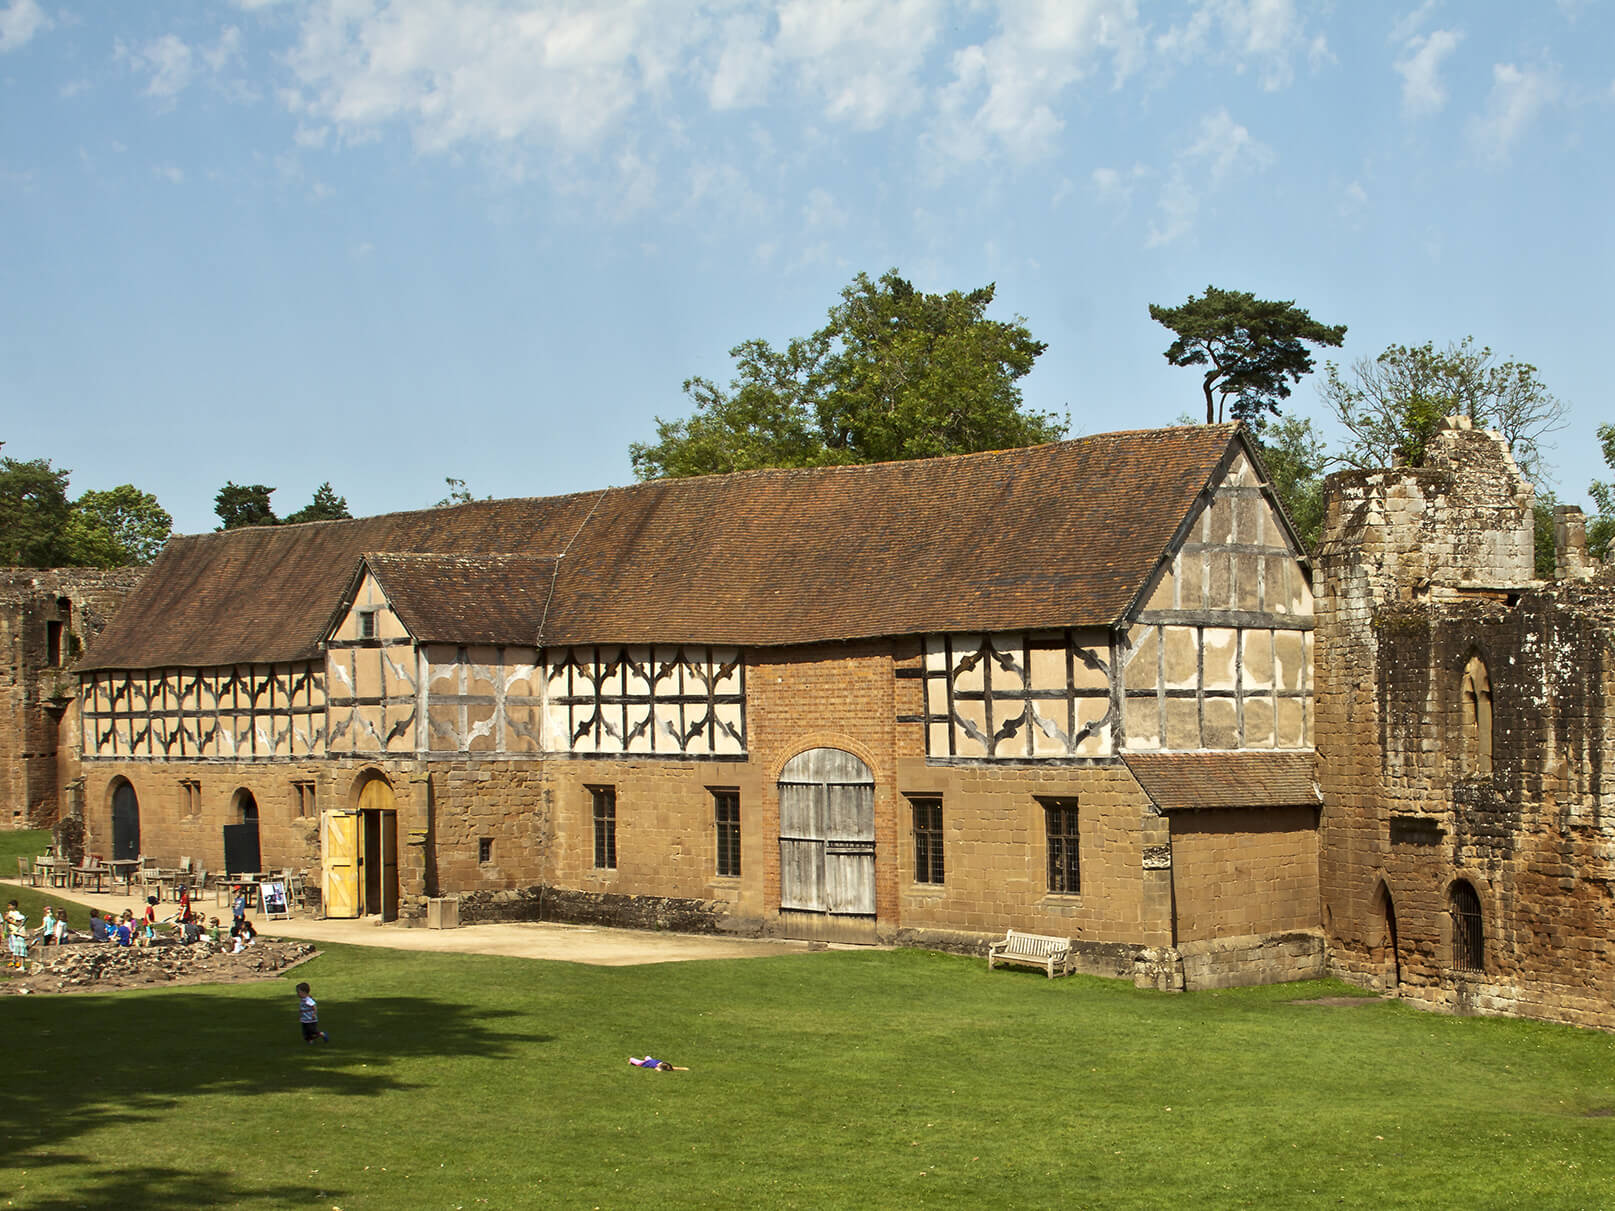 Venue: The Tudor Stables